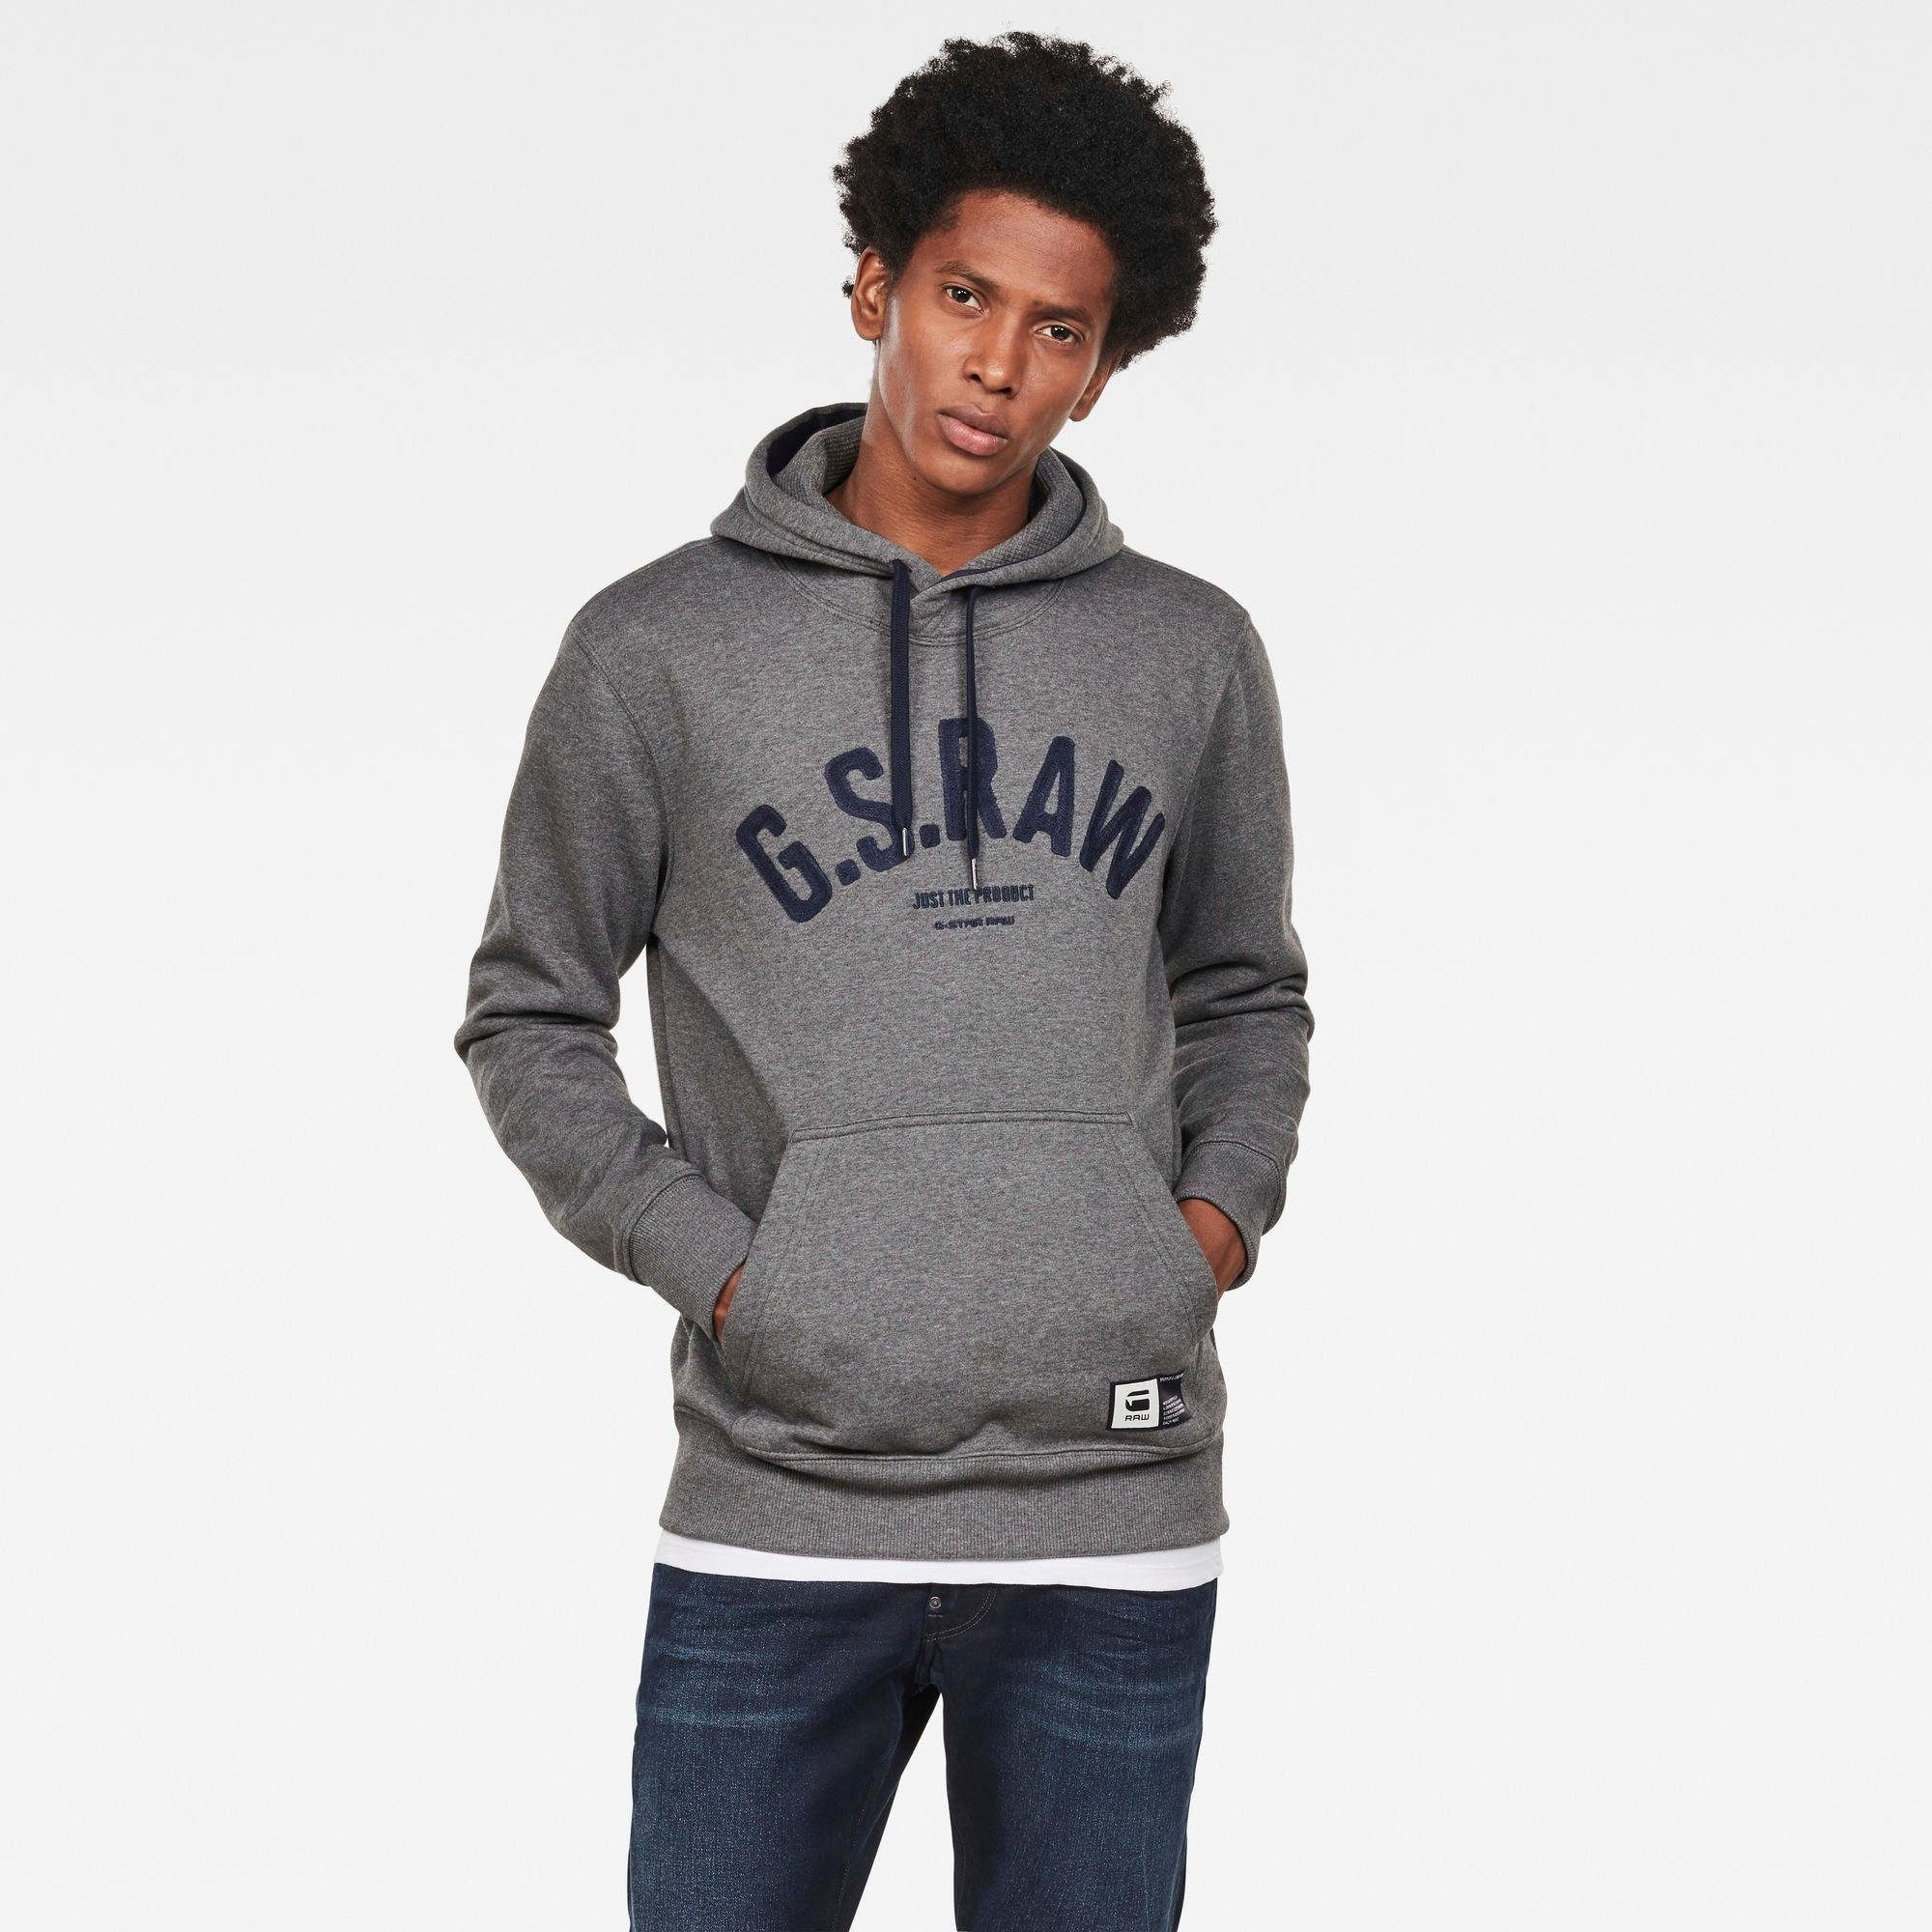 G-Star RAW Kapuzensweatshirt Graphic 14 core | Bekleidung > Sweatshirts & -jacken > Sweatshirts | Grau | G-Star Raw